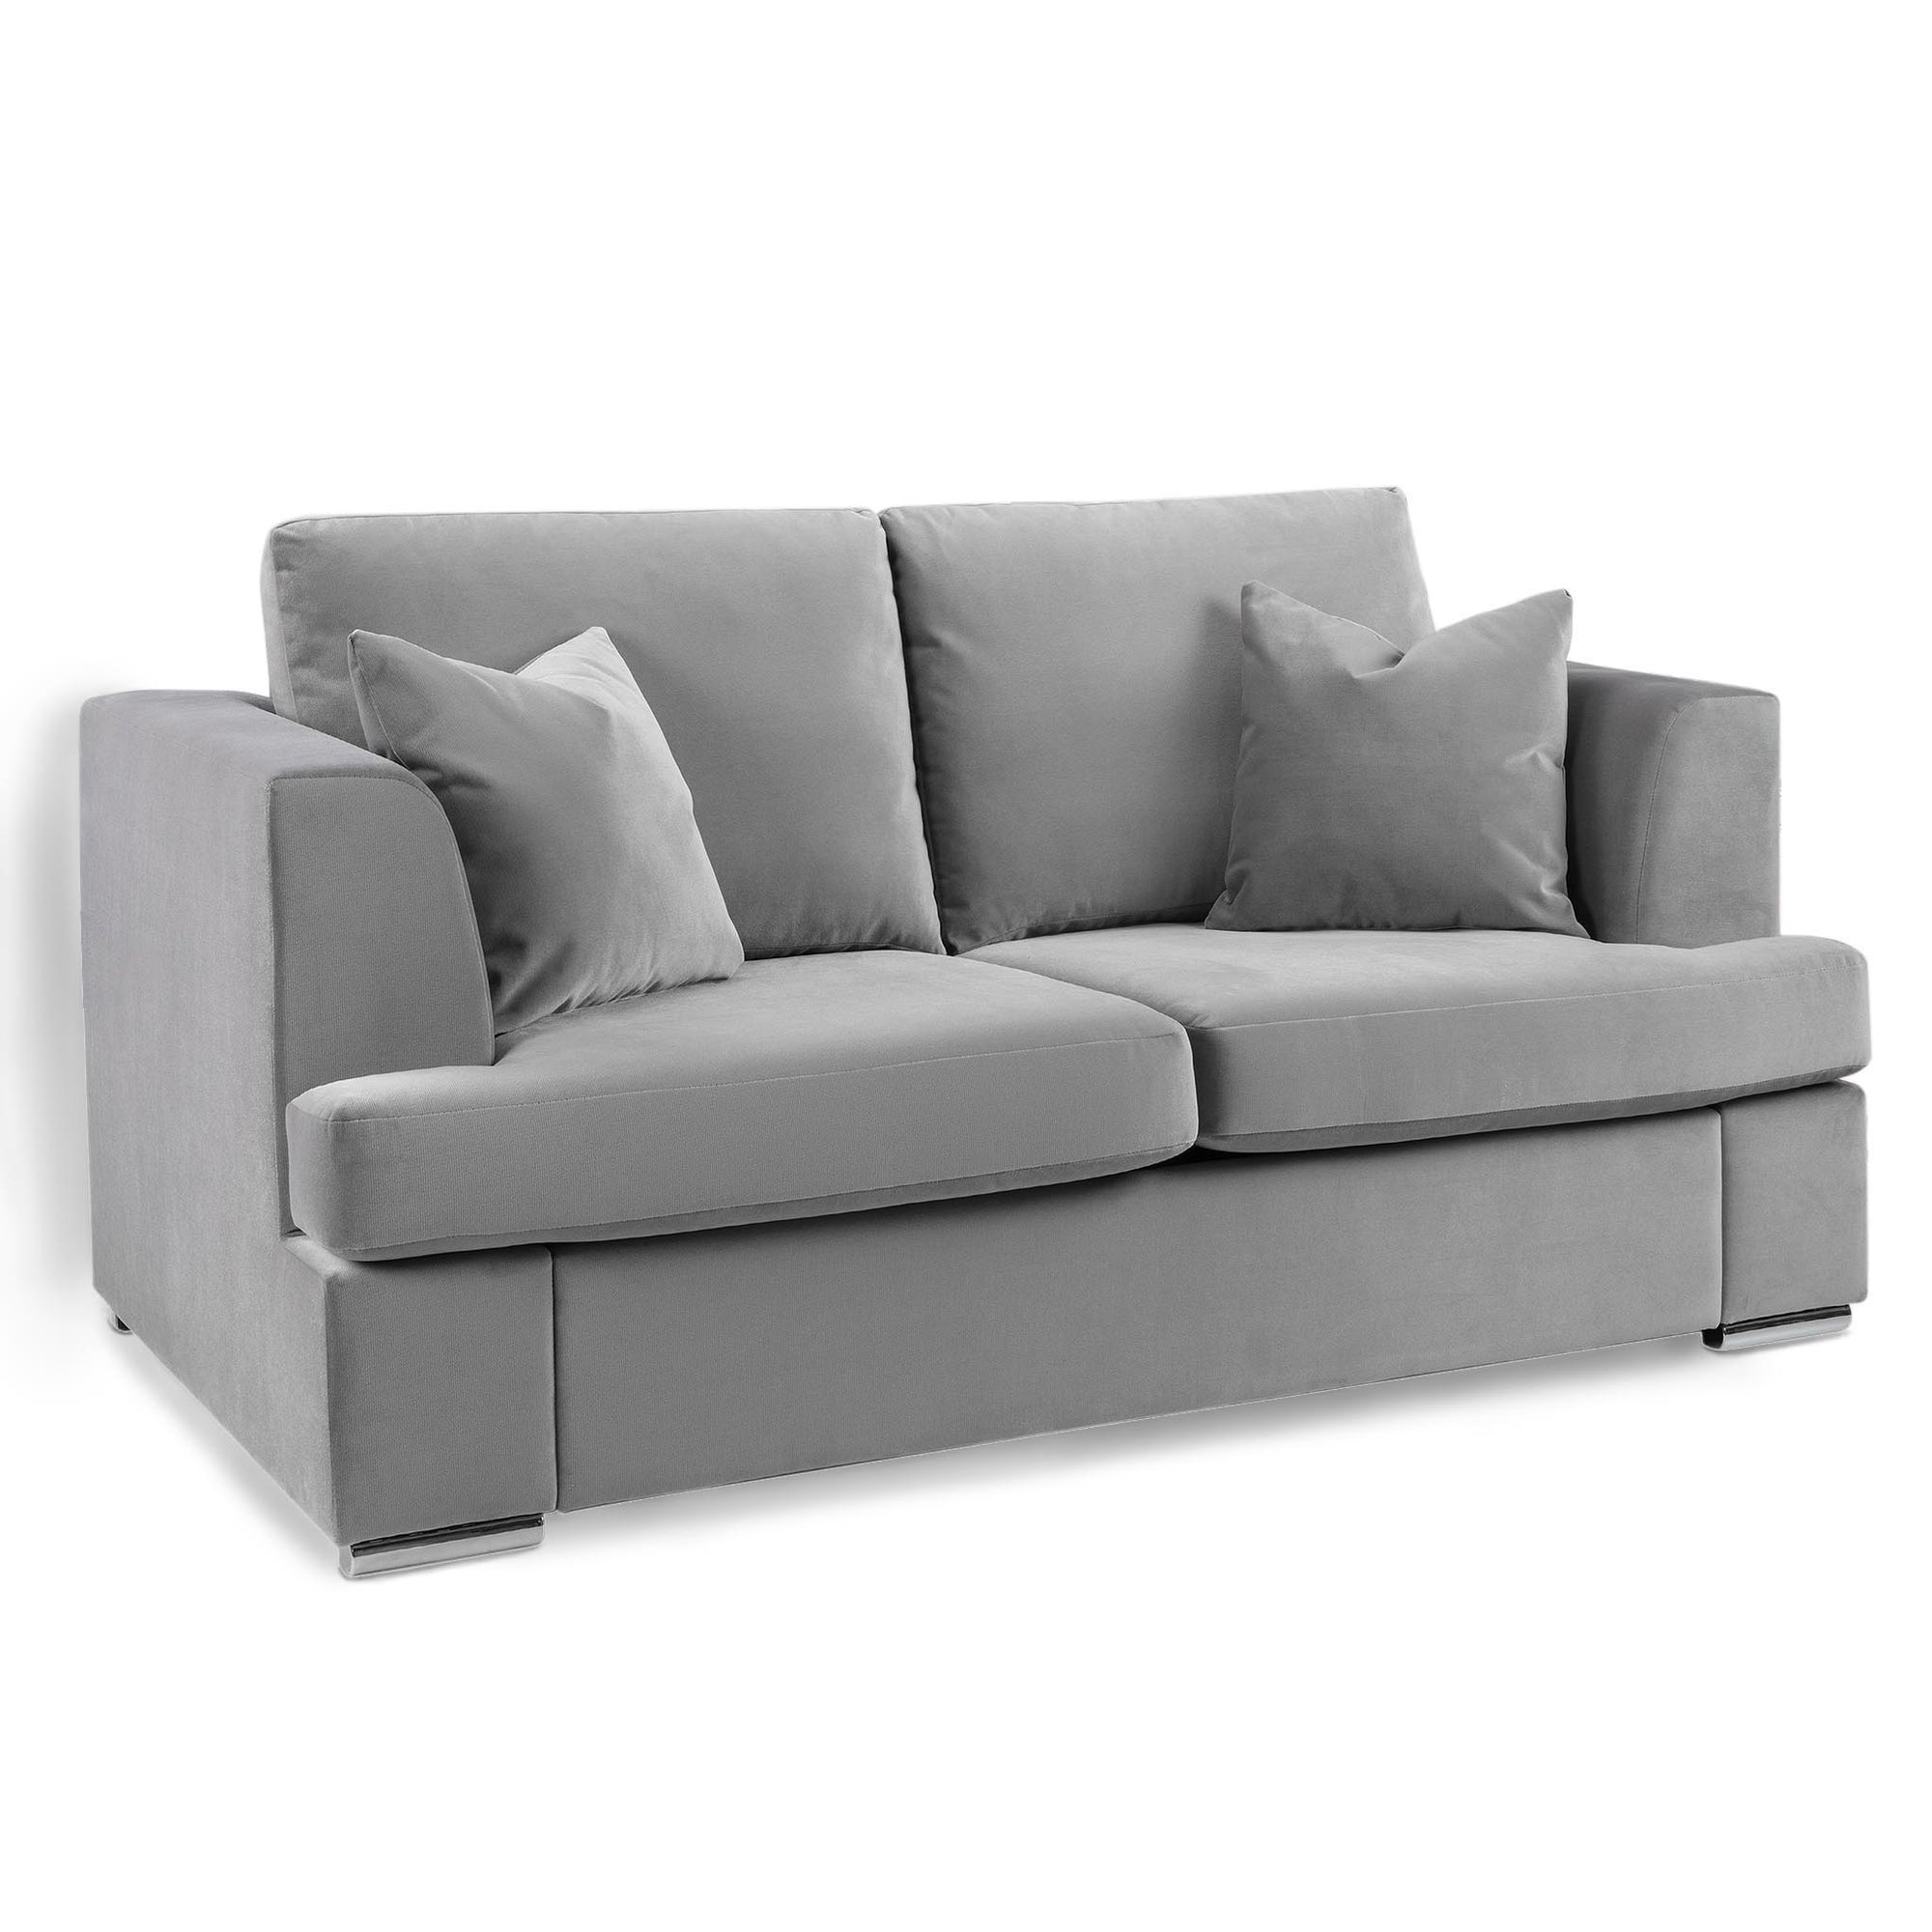 Felice Grey 2 Seater Sofa by Roseland Furniture